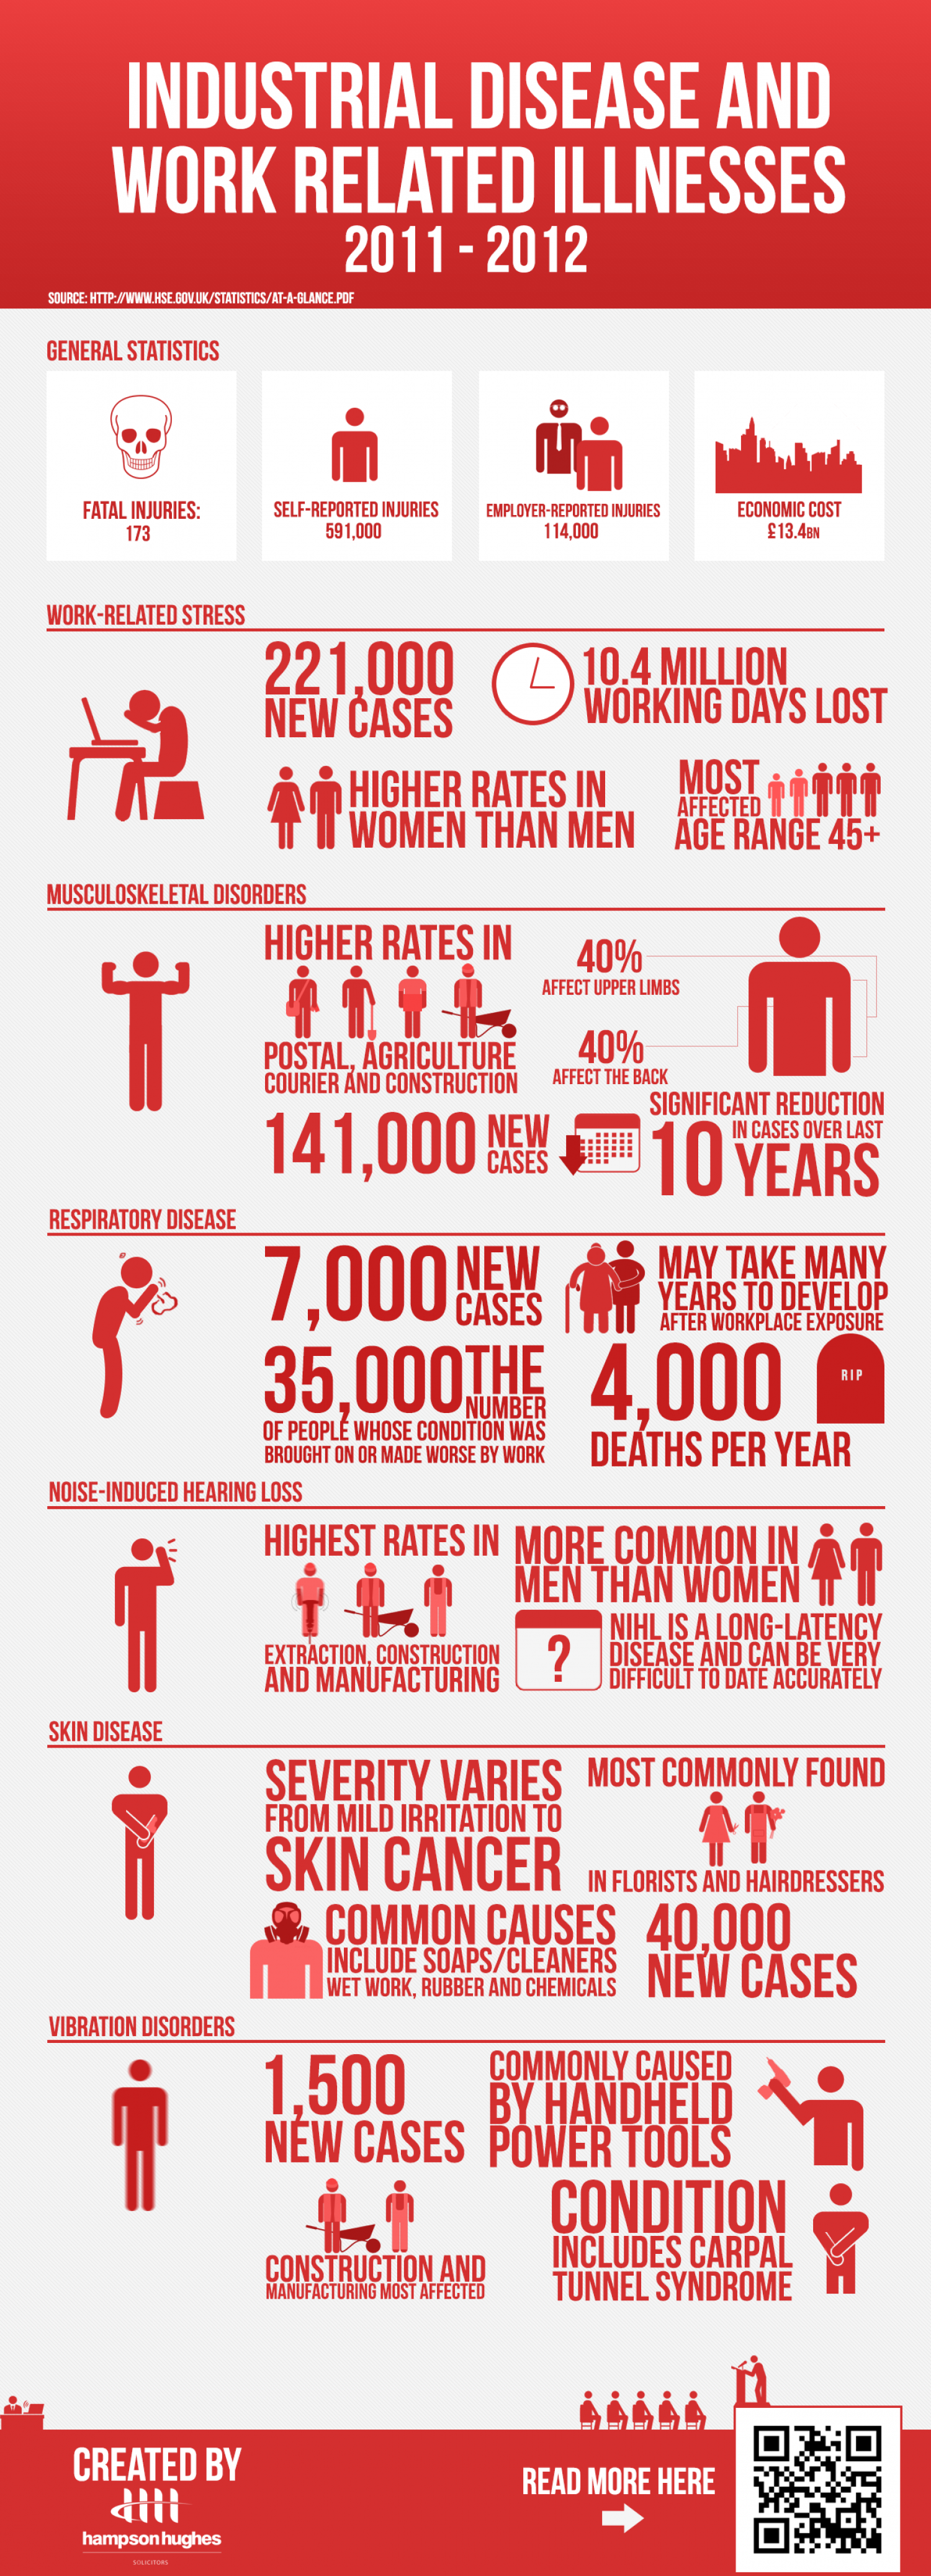 Industrial Disease & Work Related Illnesses Infographic